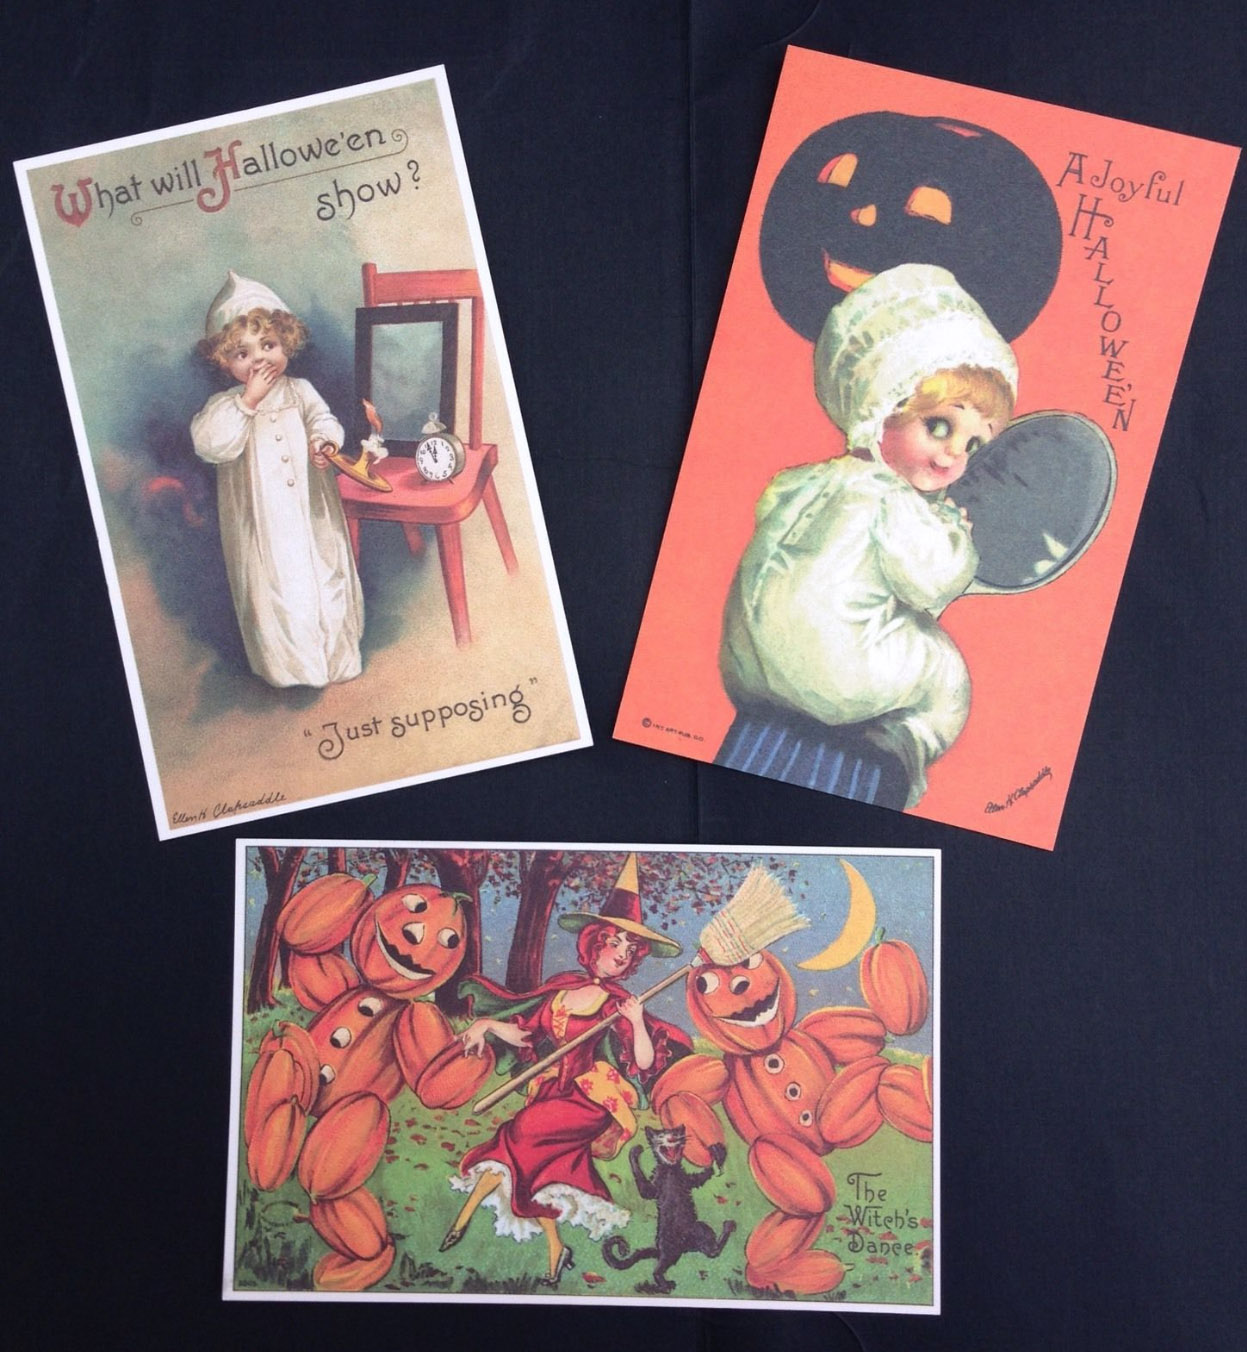 ebay listing for three vintage halloween cards